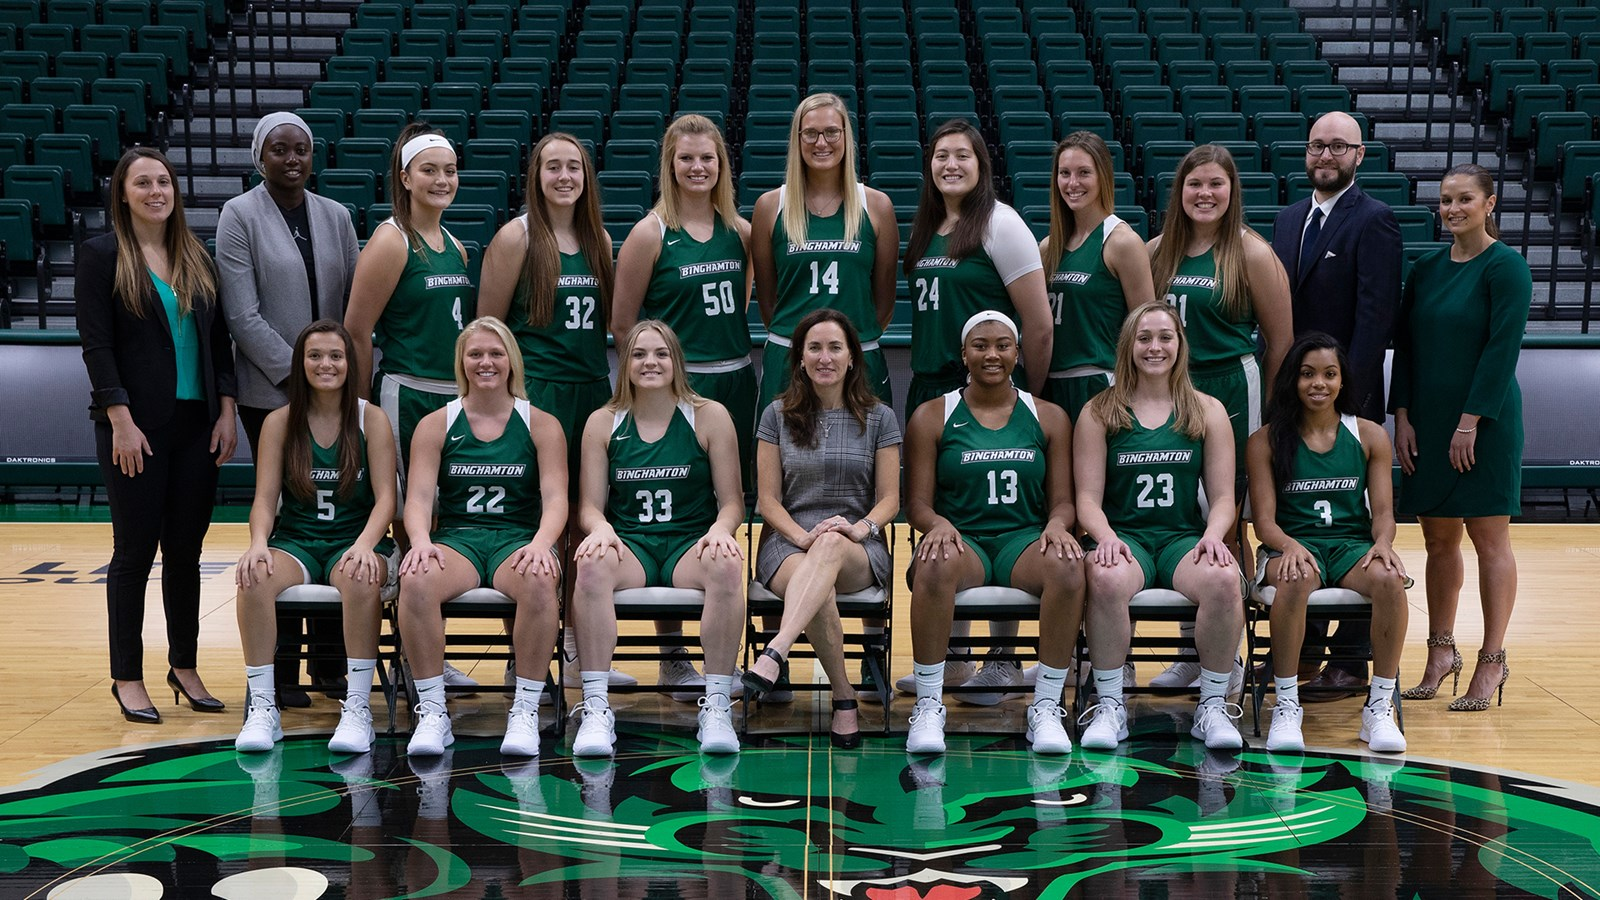 A look at the women's basketball team